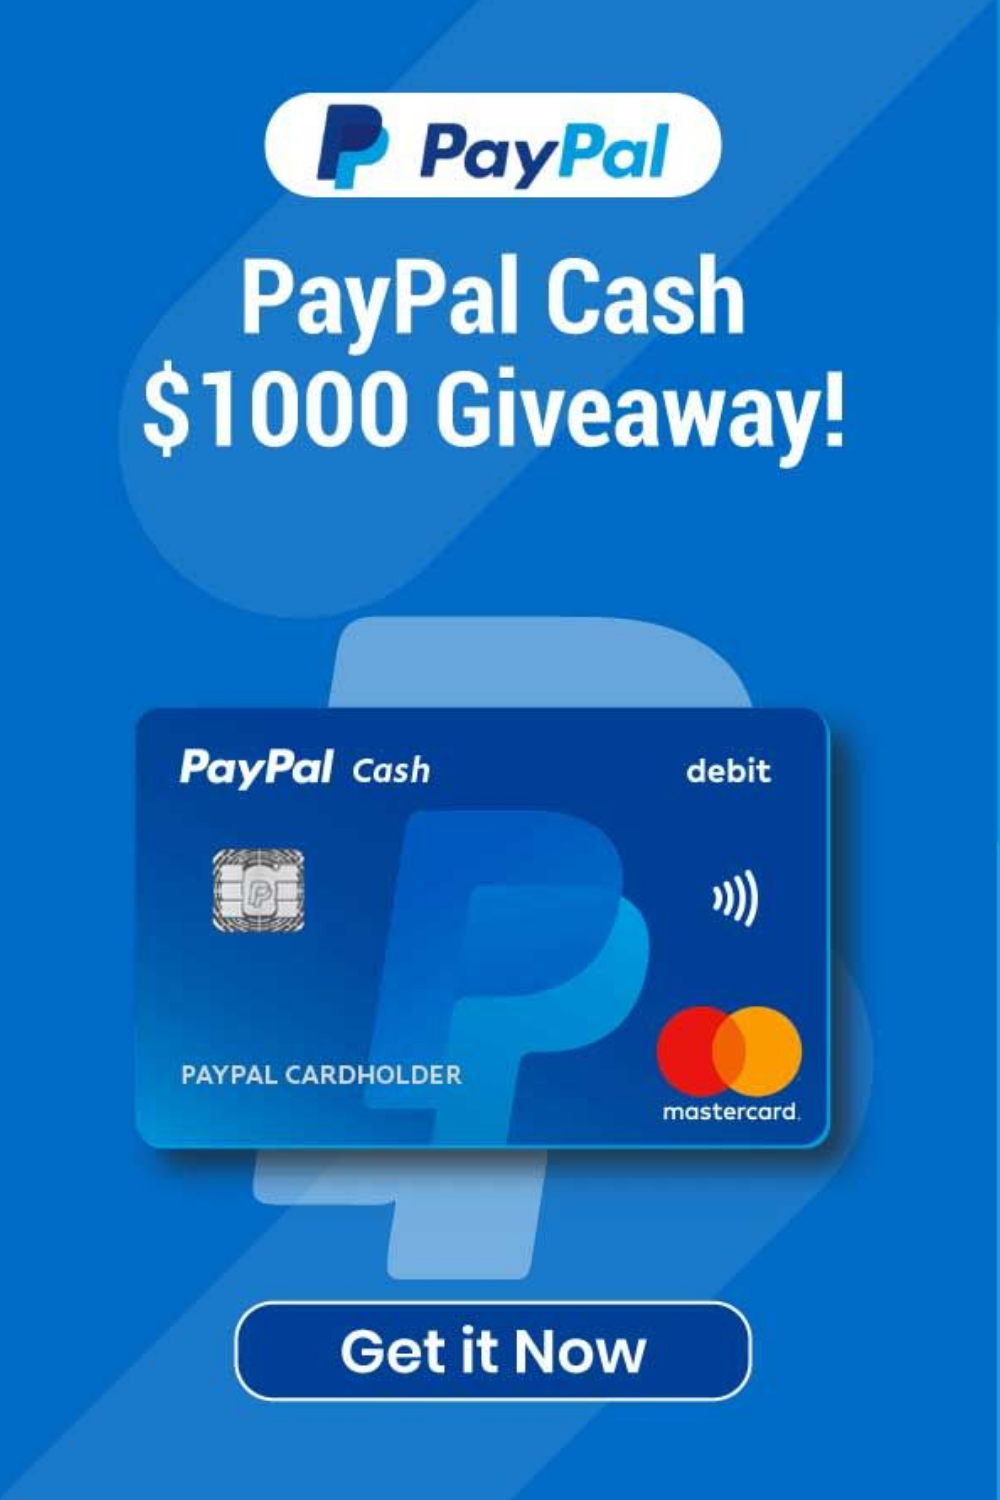 Paypal Cash Giveaway In 2021 Paypal Giveaway Paypal Gift Card Paypal Cash